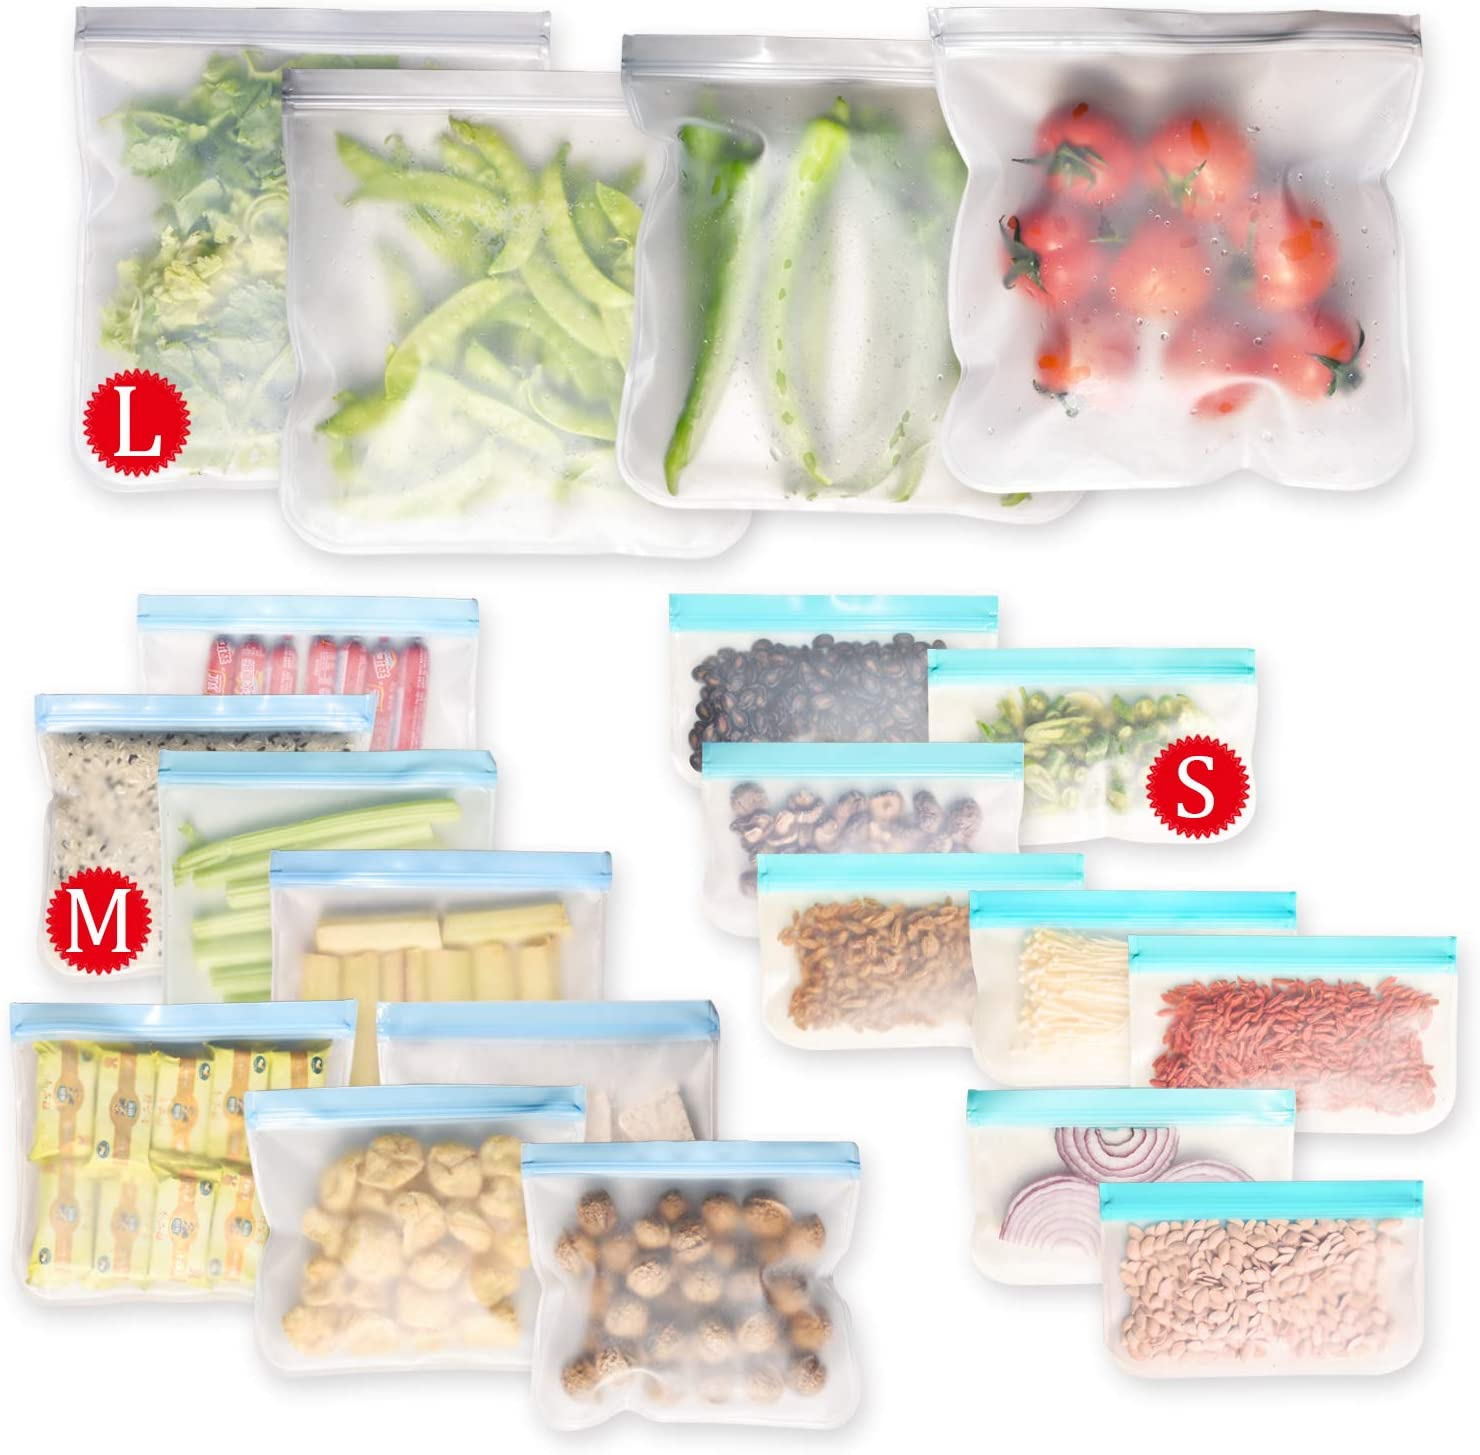 OKMLFGE Reusable Storage Bags - 20 Pack BPA FREE Freezer Bags(4 Reusable Gallon Bags + 8 Leakproof Reusable Sandwich Bags + 8 THICK Reusable Snack Bags) Lunch Bags for Food Marinate Meat Fruit Cerea